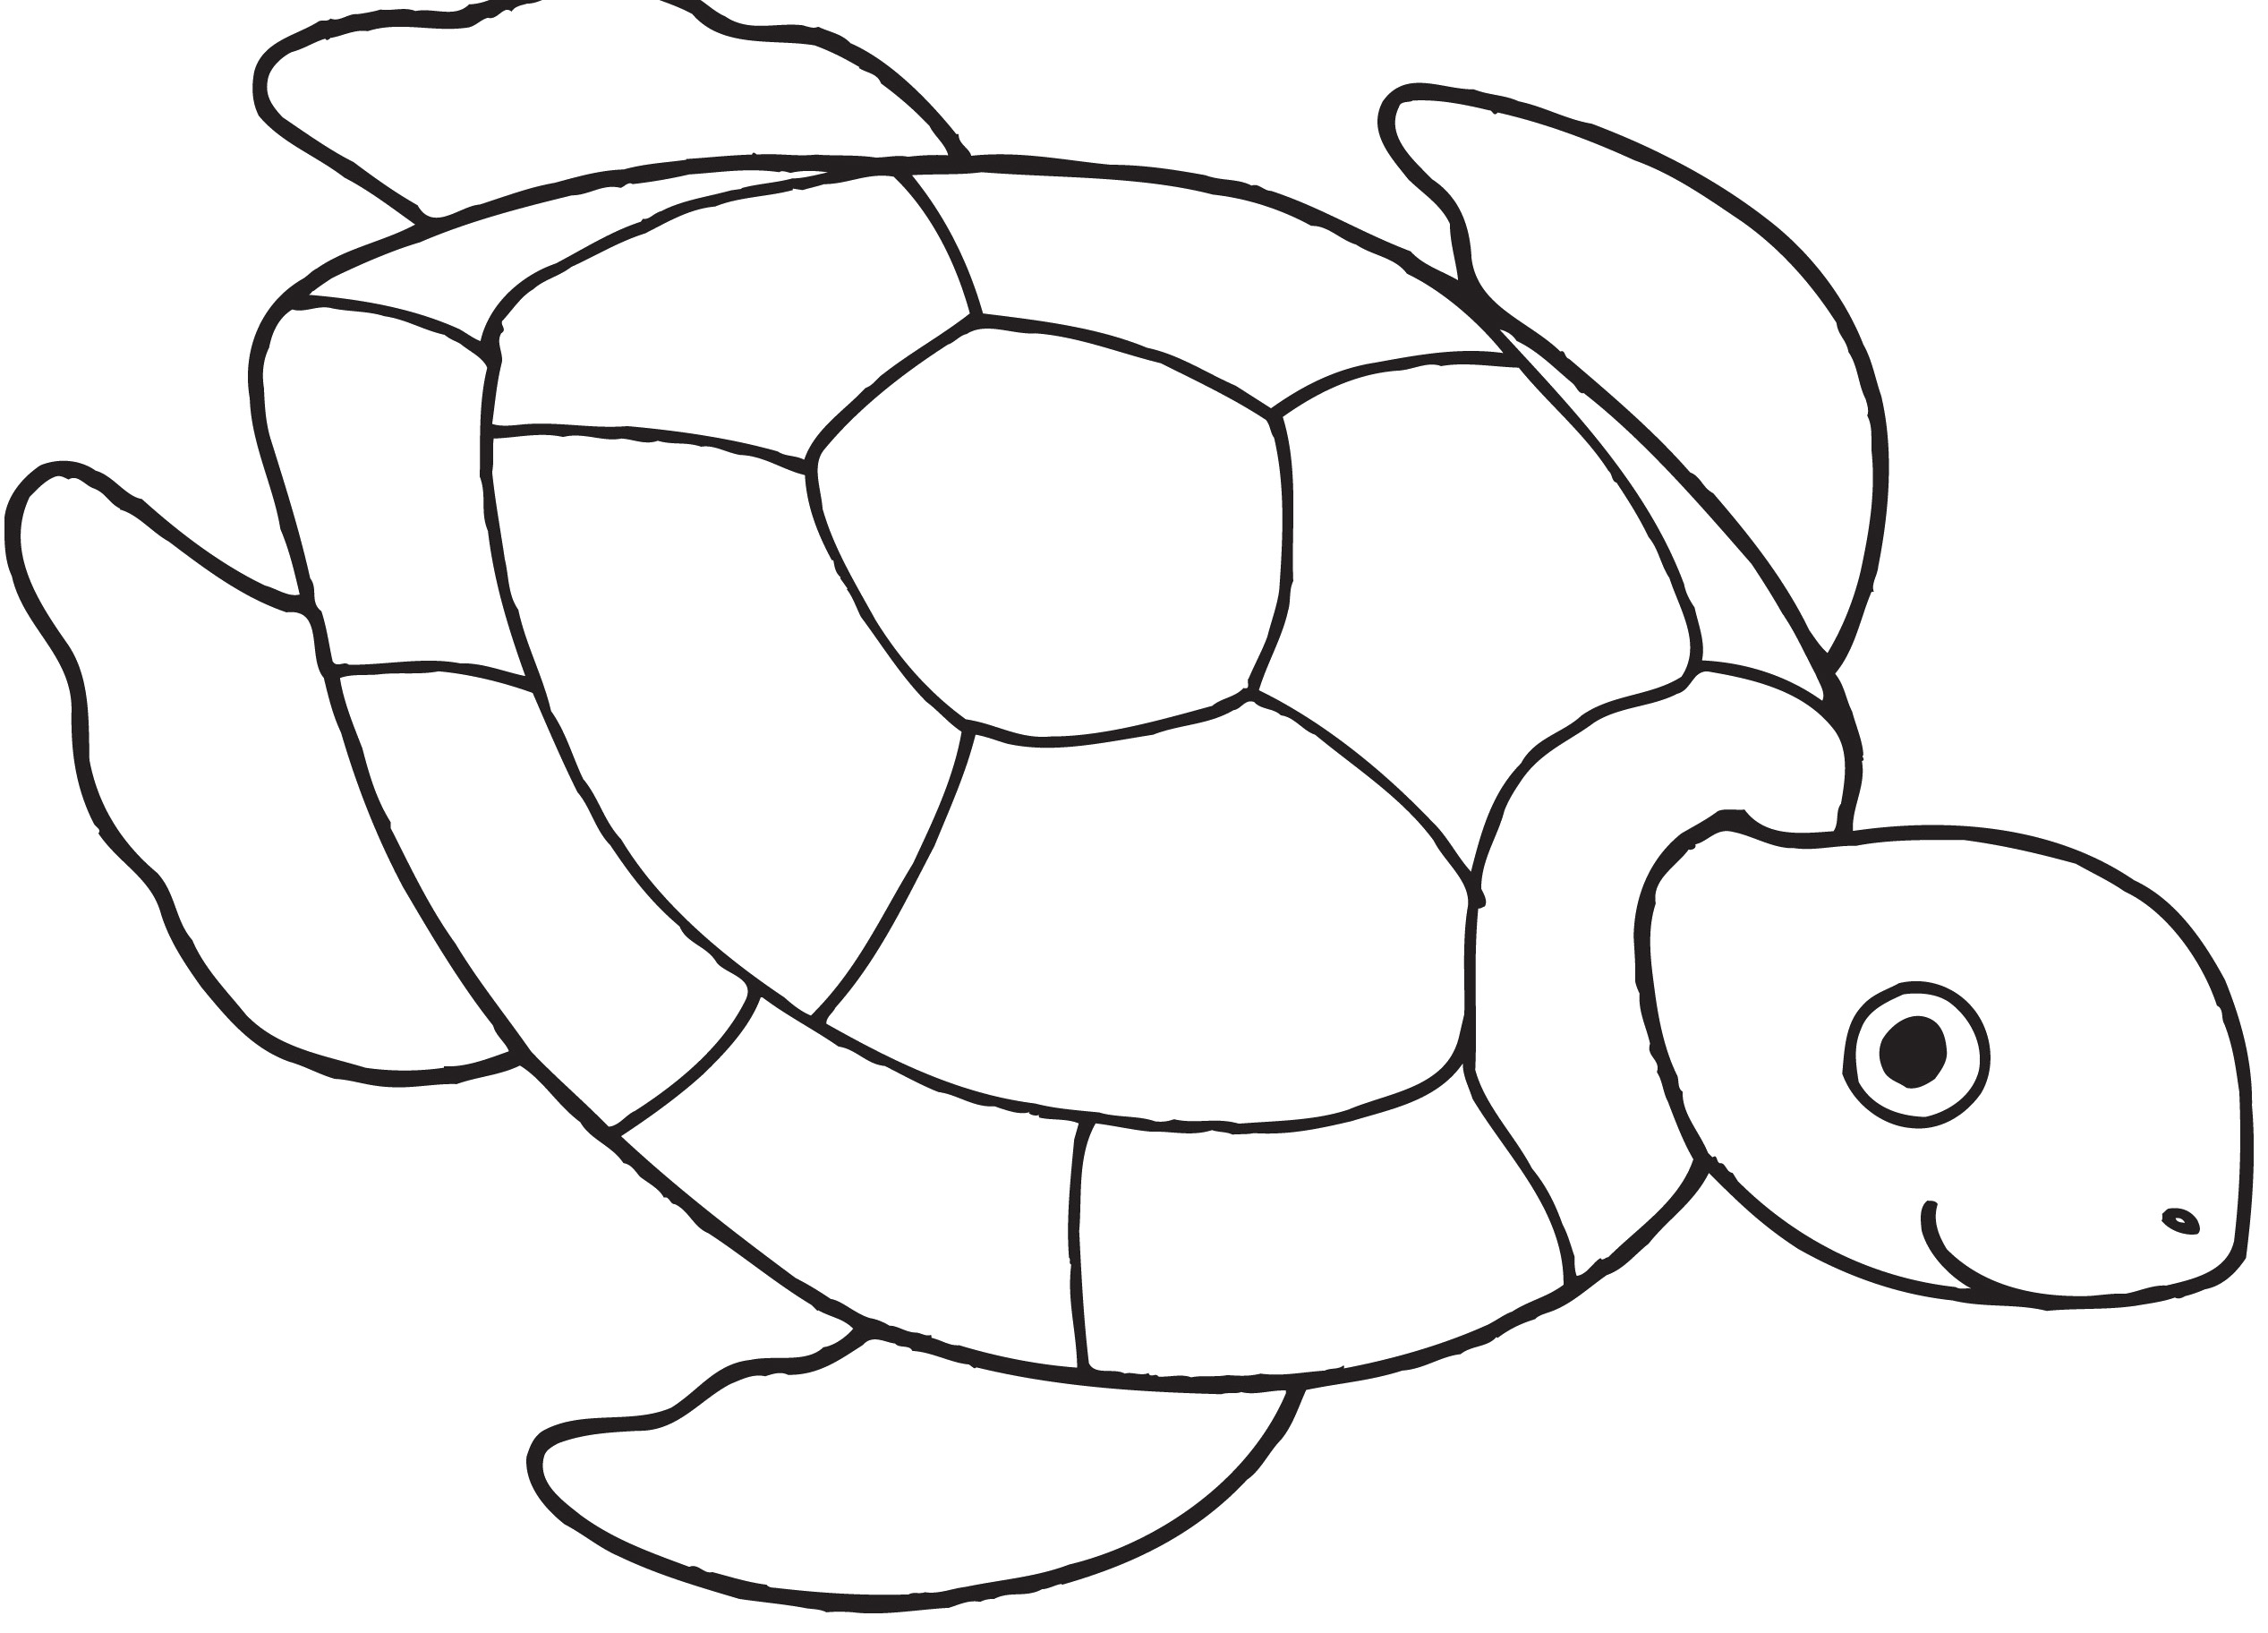 This is an image of Irresistible Printable Turtle Coloring Pages